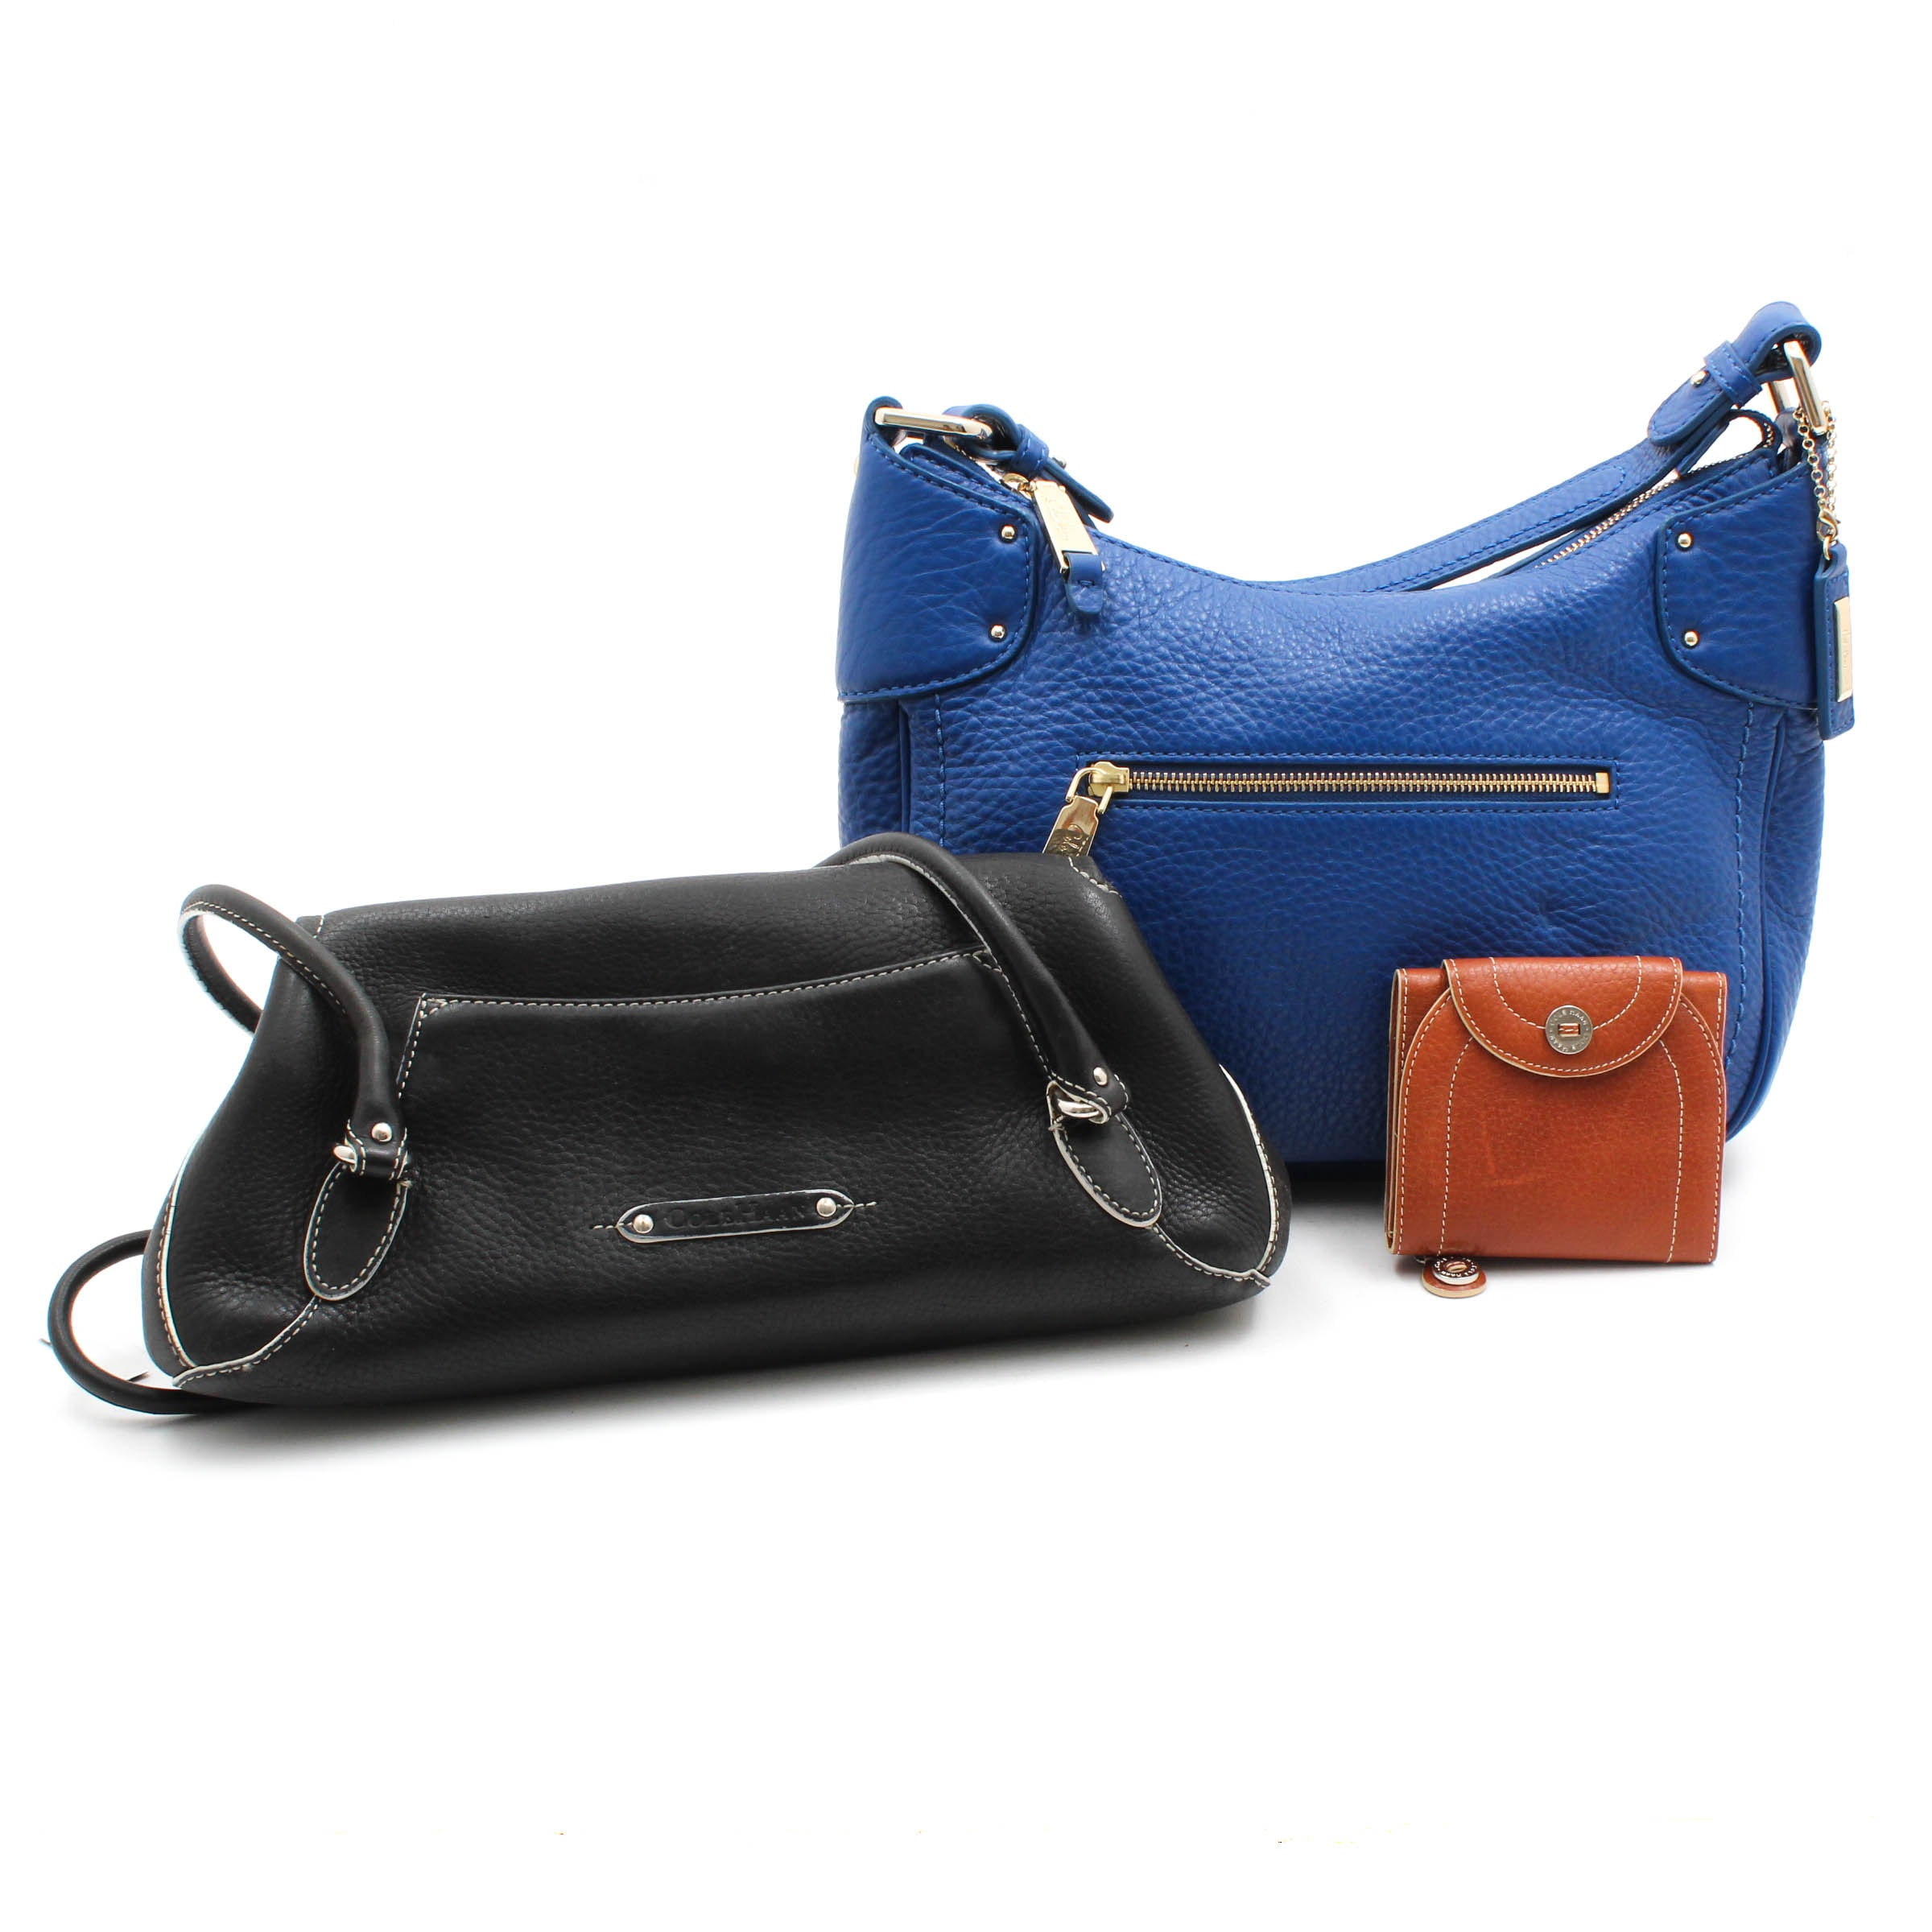 Cole Haan Pebbled Leather Shoulder Bags and Wallet